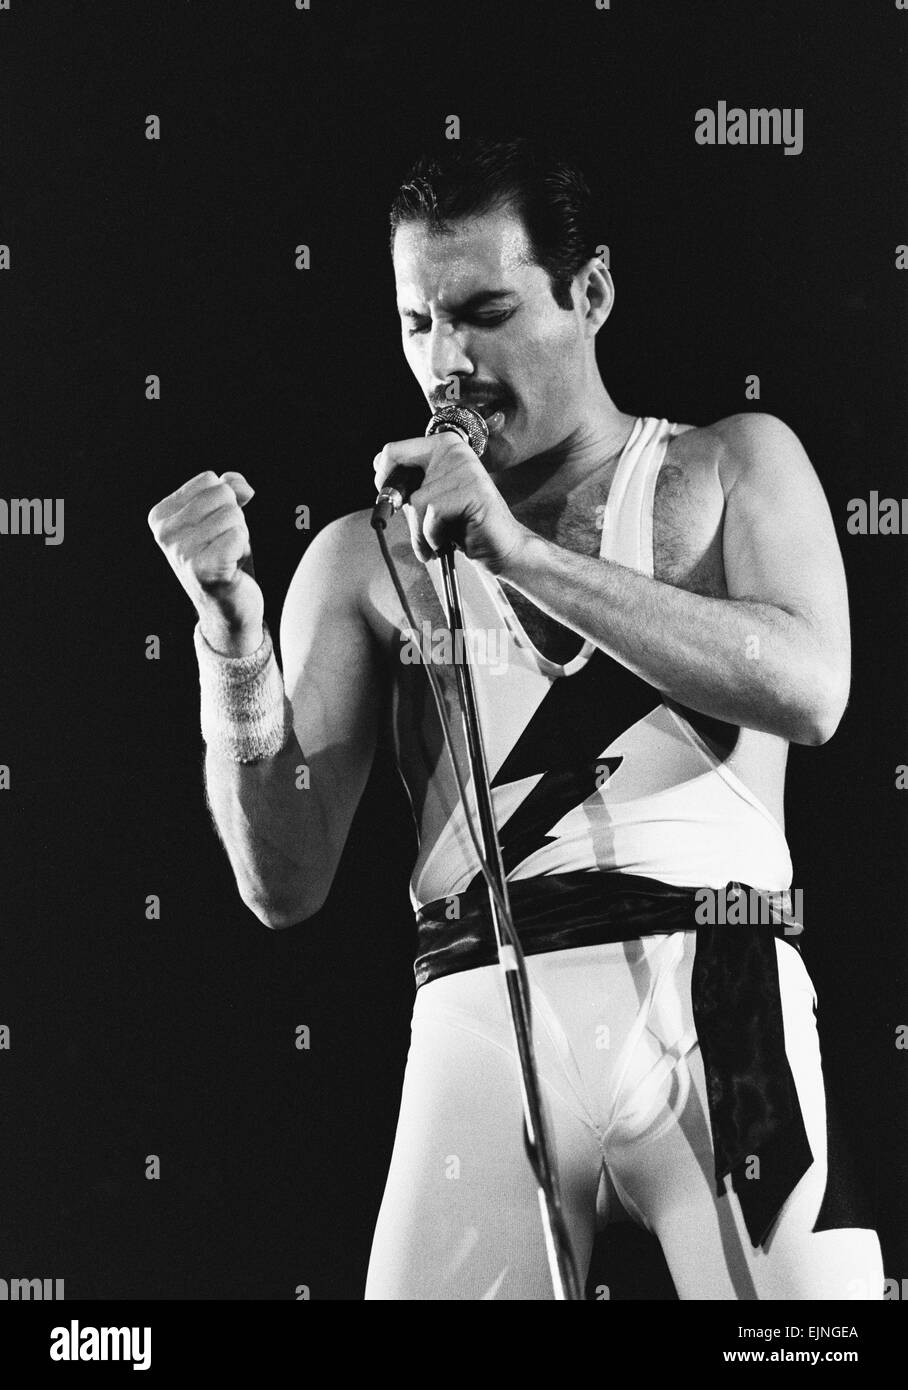 a history of queen a band fronted by freddy mercury In november 1991, days before he died, freddie mercury met his manager to discuss how best to reveal to the world that he had aids i was out last night and saw a queen cover band, and there wasn't a single person in the audience who could have seen them live because they were too young.